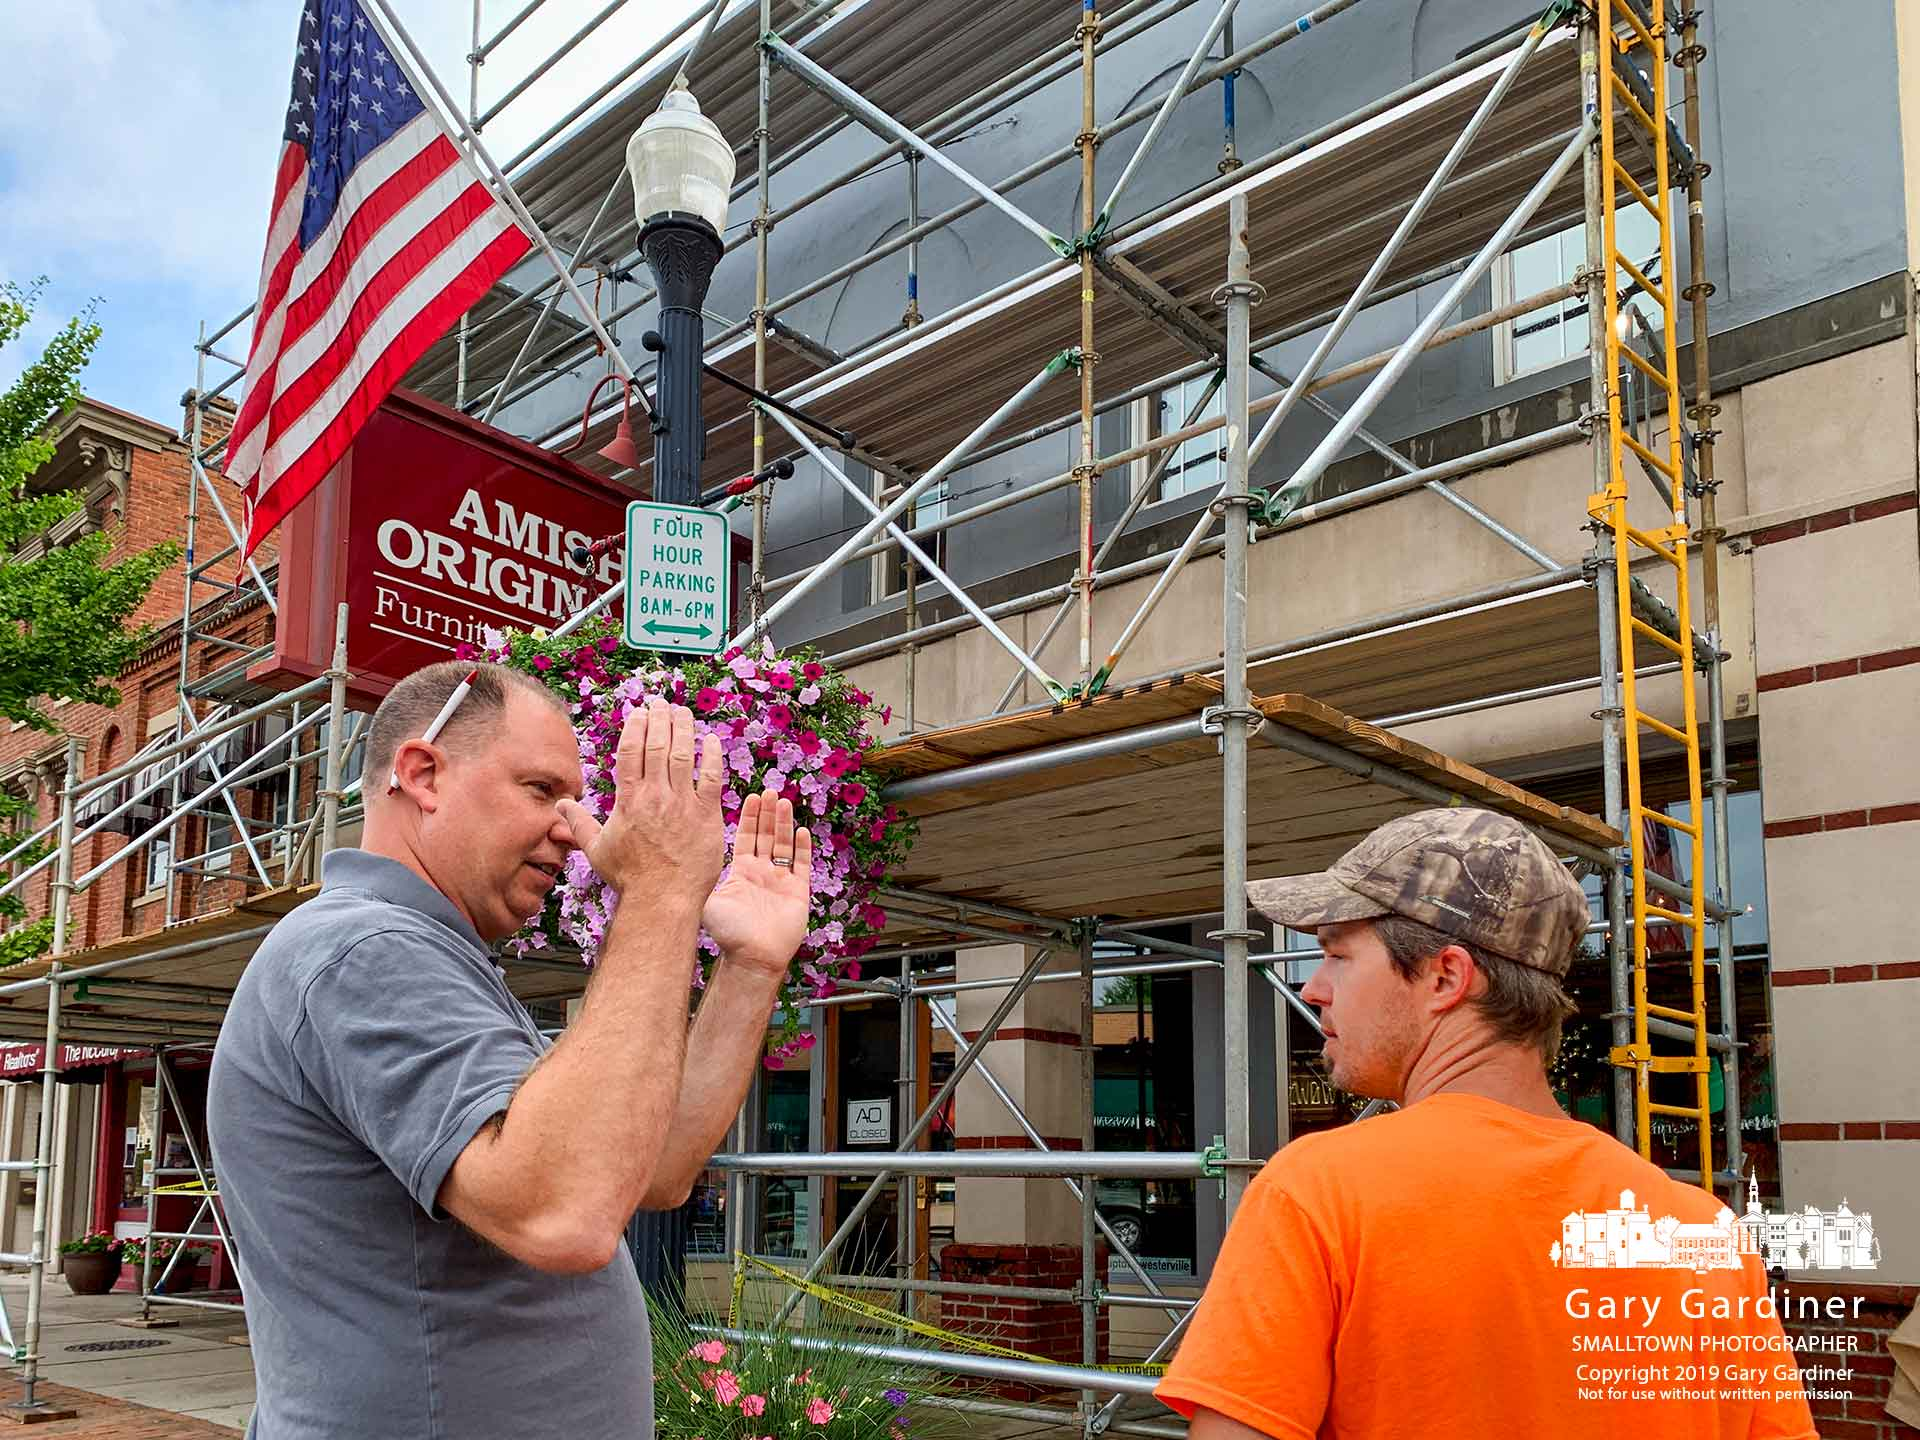 Mike Deringer, left, of Amish Originals in Uptown Westerville talks with his contractor about paint trim colors and locations as the business upgrades its facade with a change of colors. My Final Photo for Aug.13, 2019.